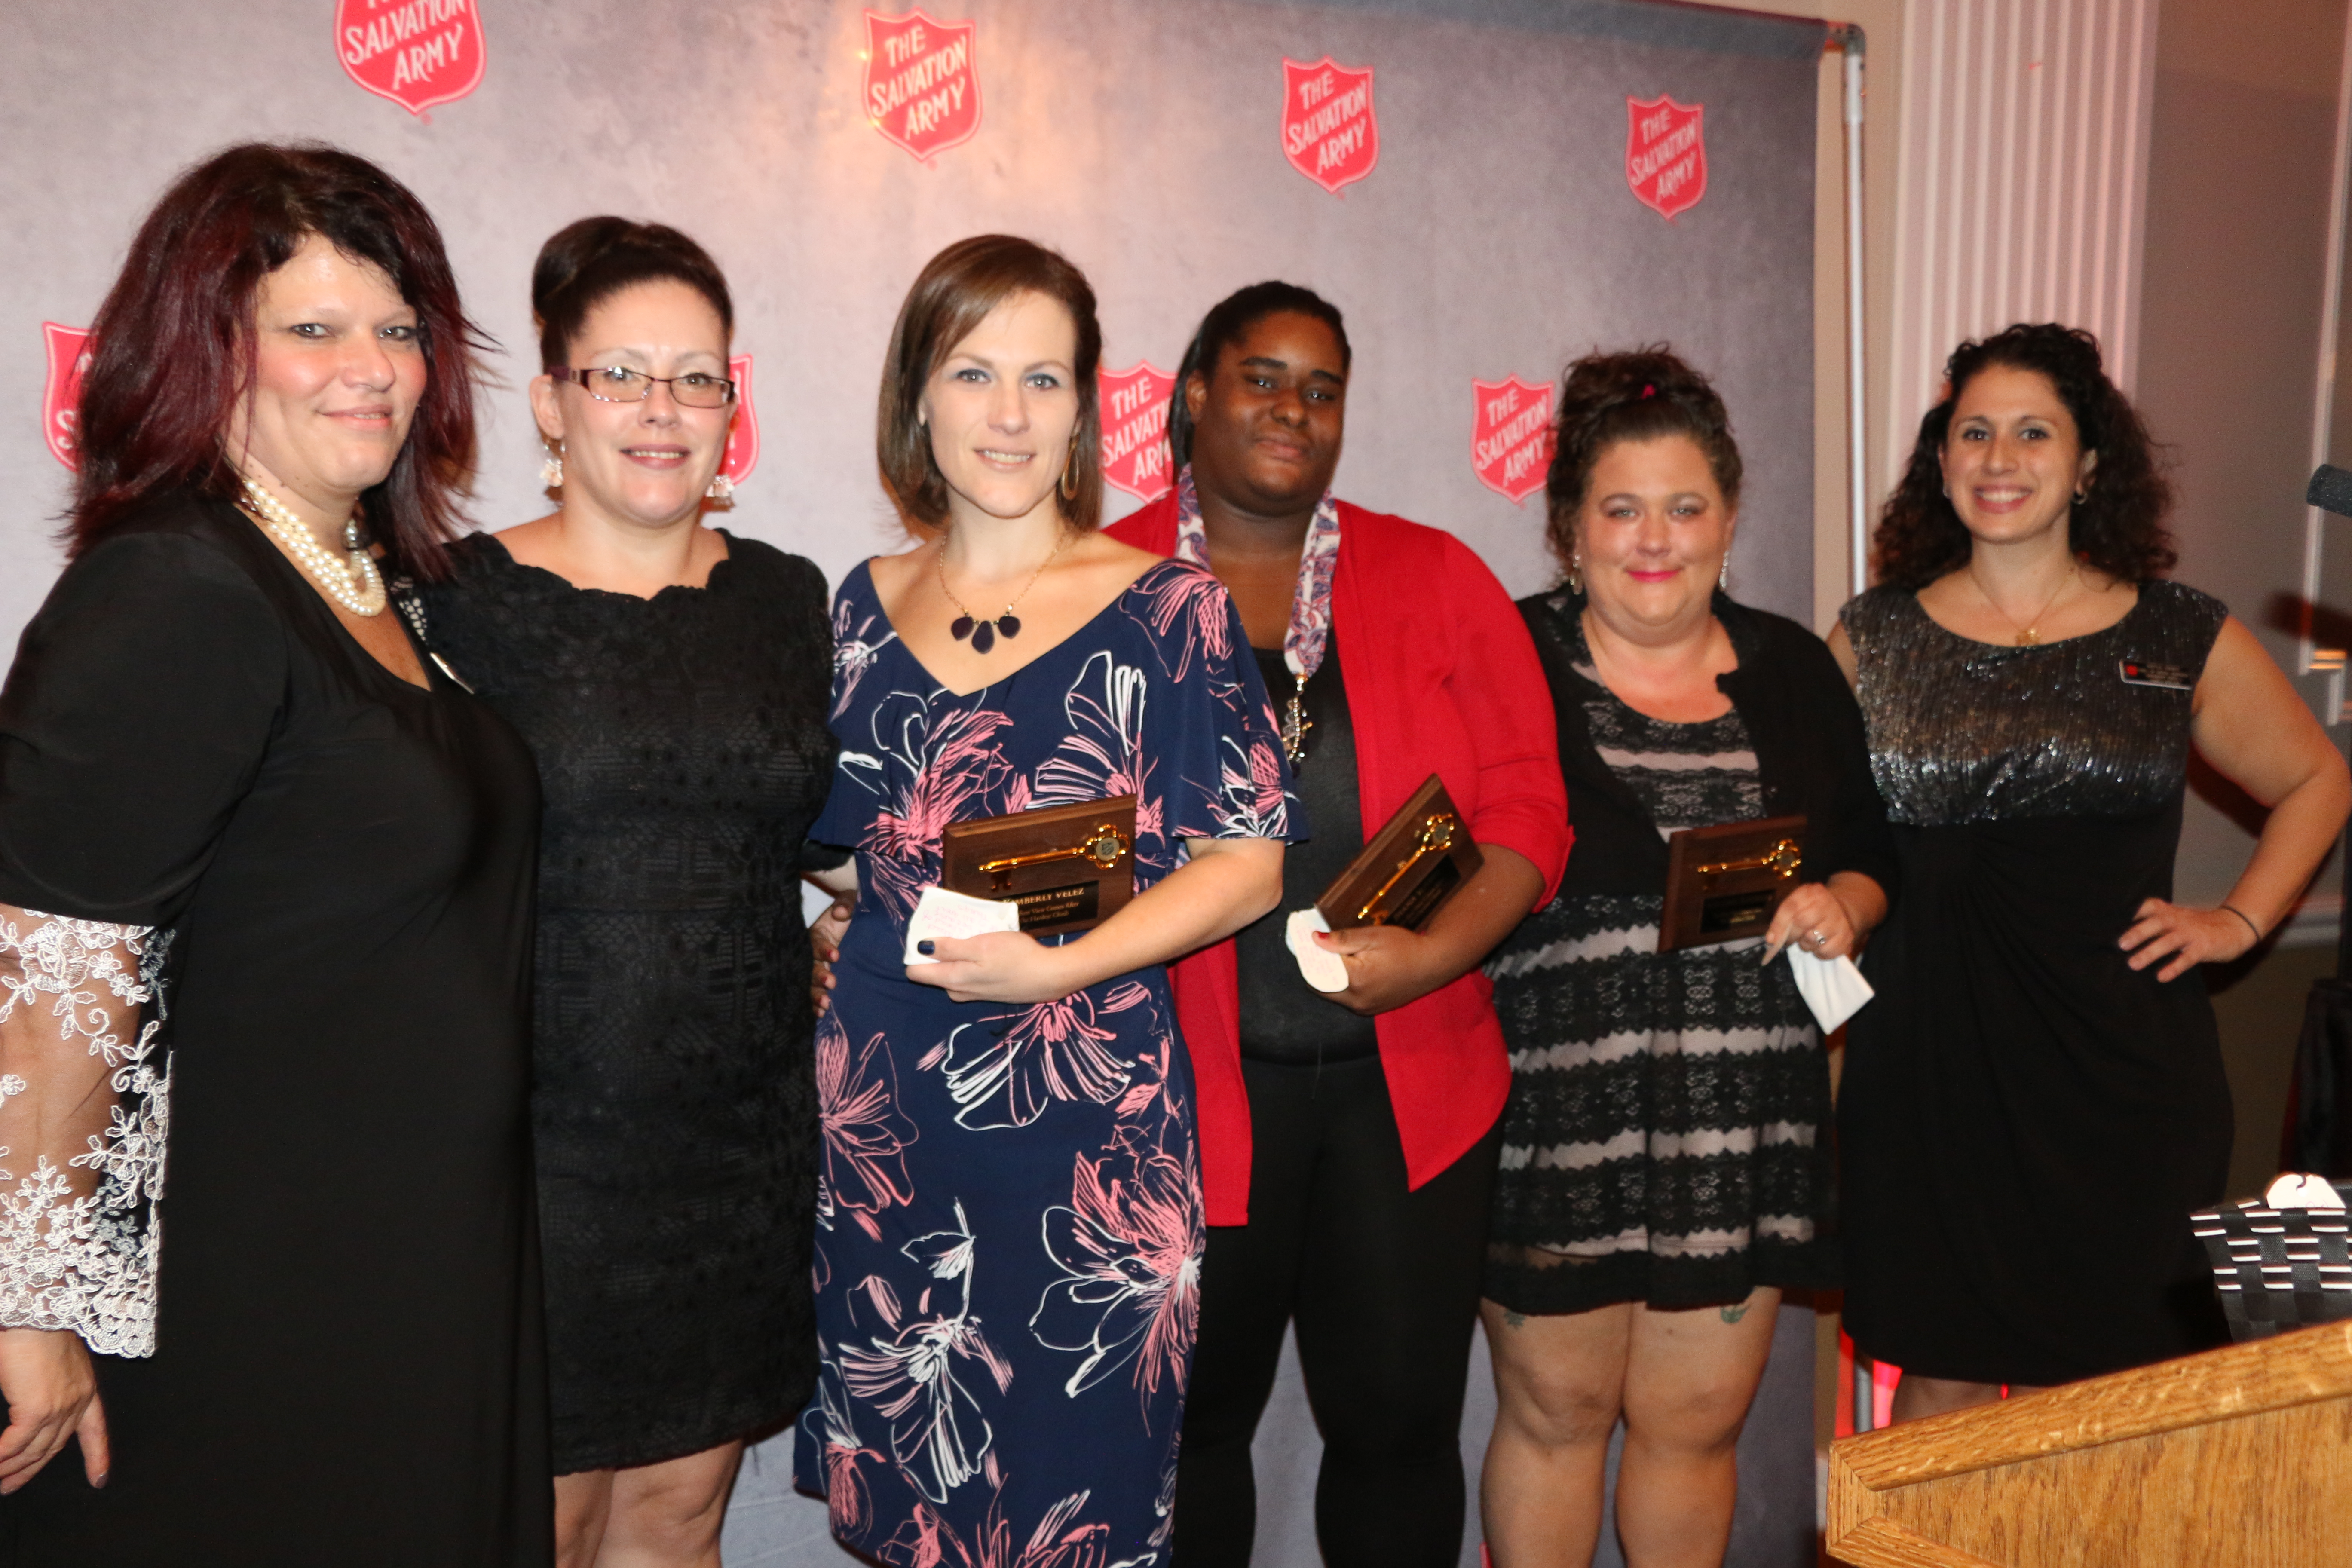 The Salvation Army's 10th Annual Waterbury Kettle Kickoff Dinner!